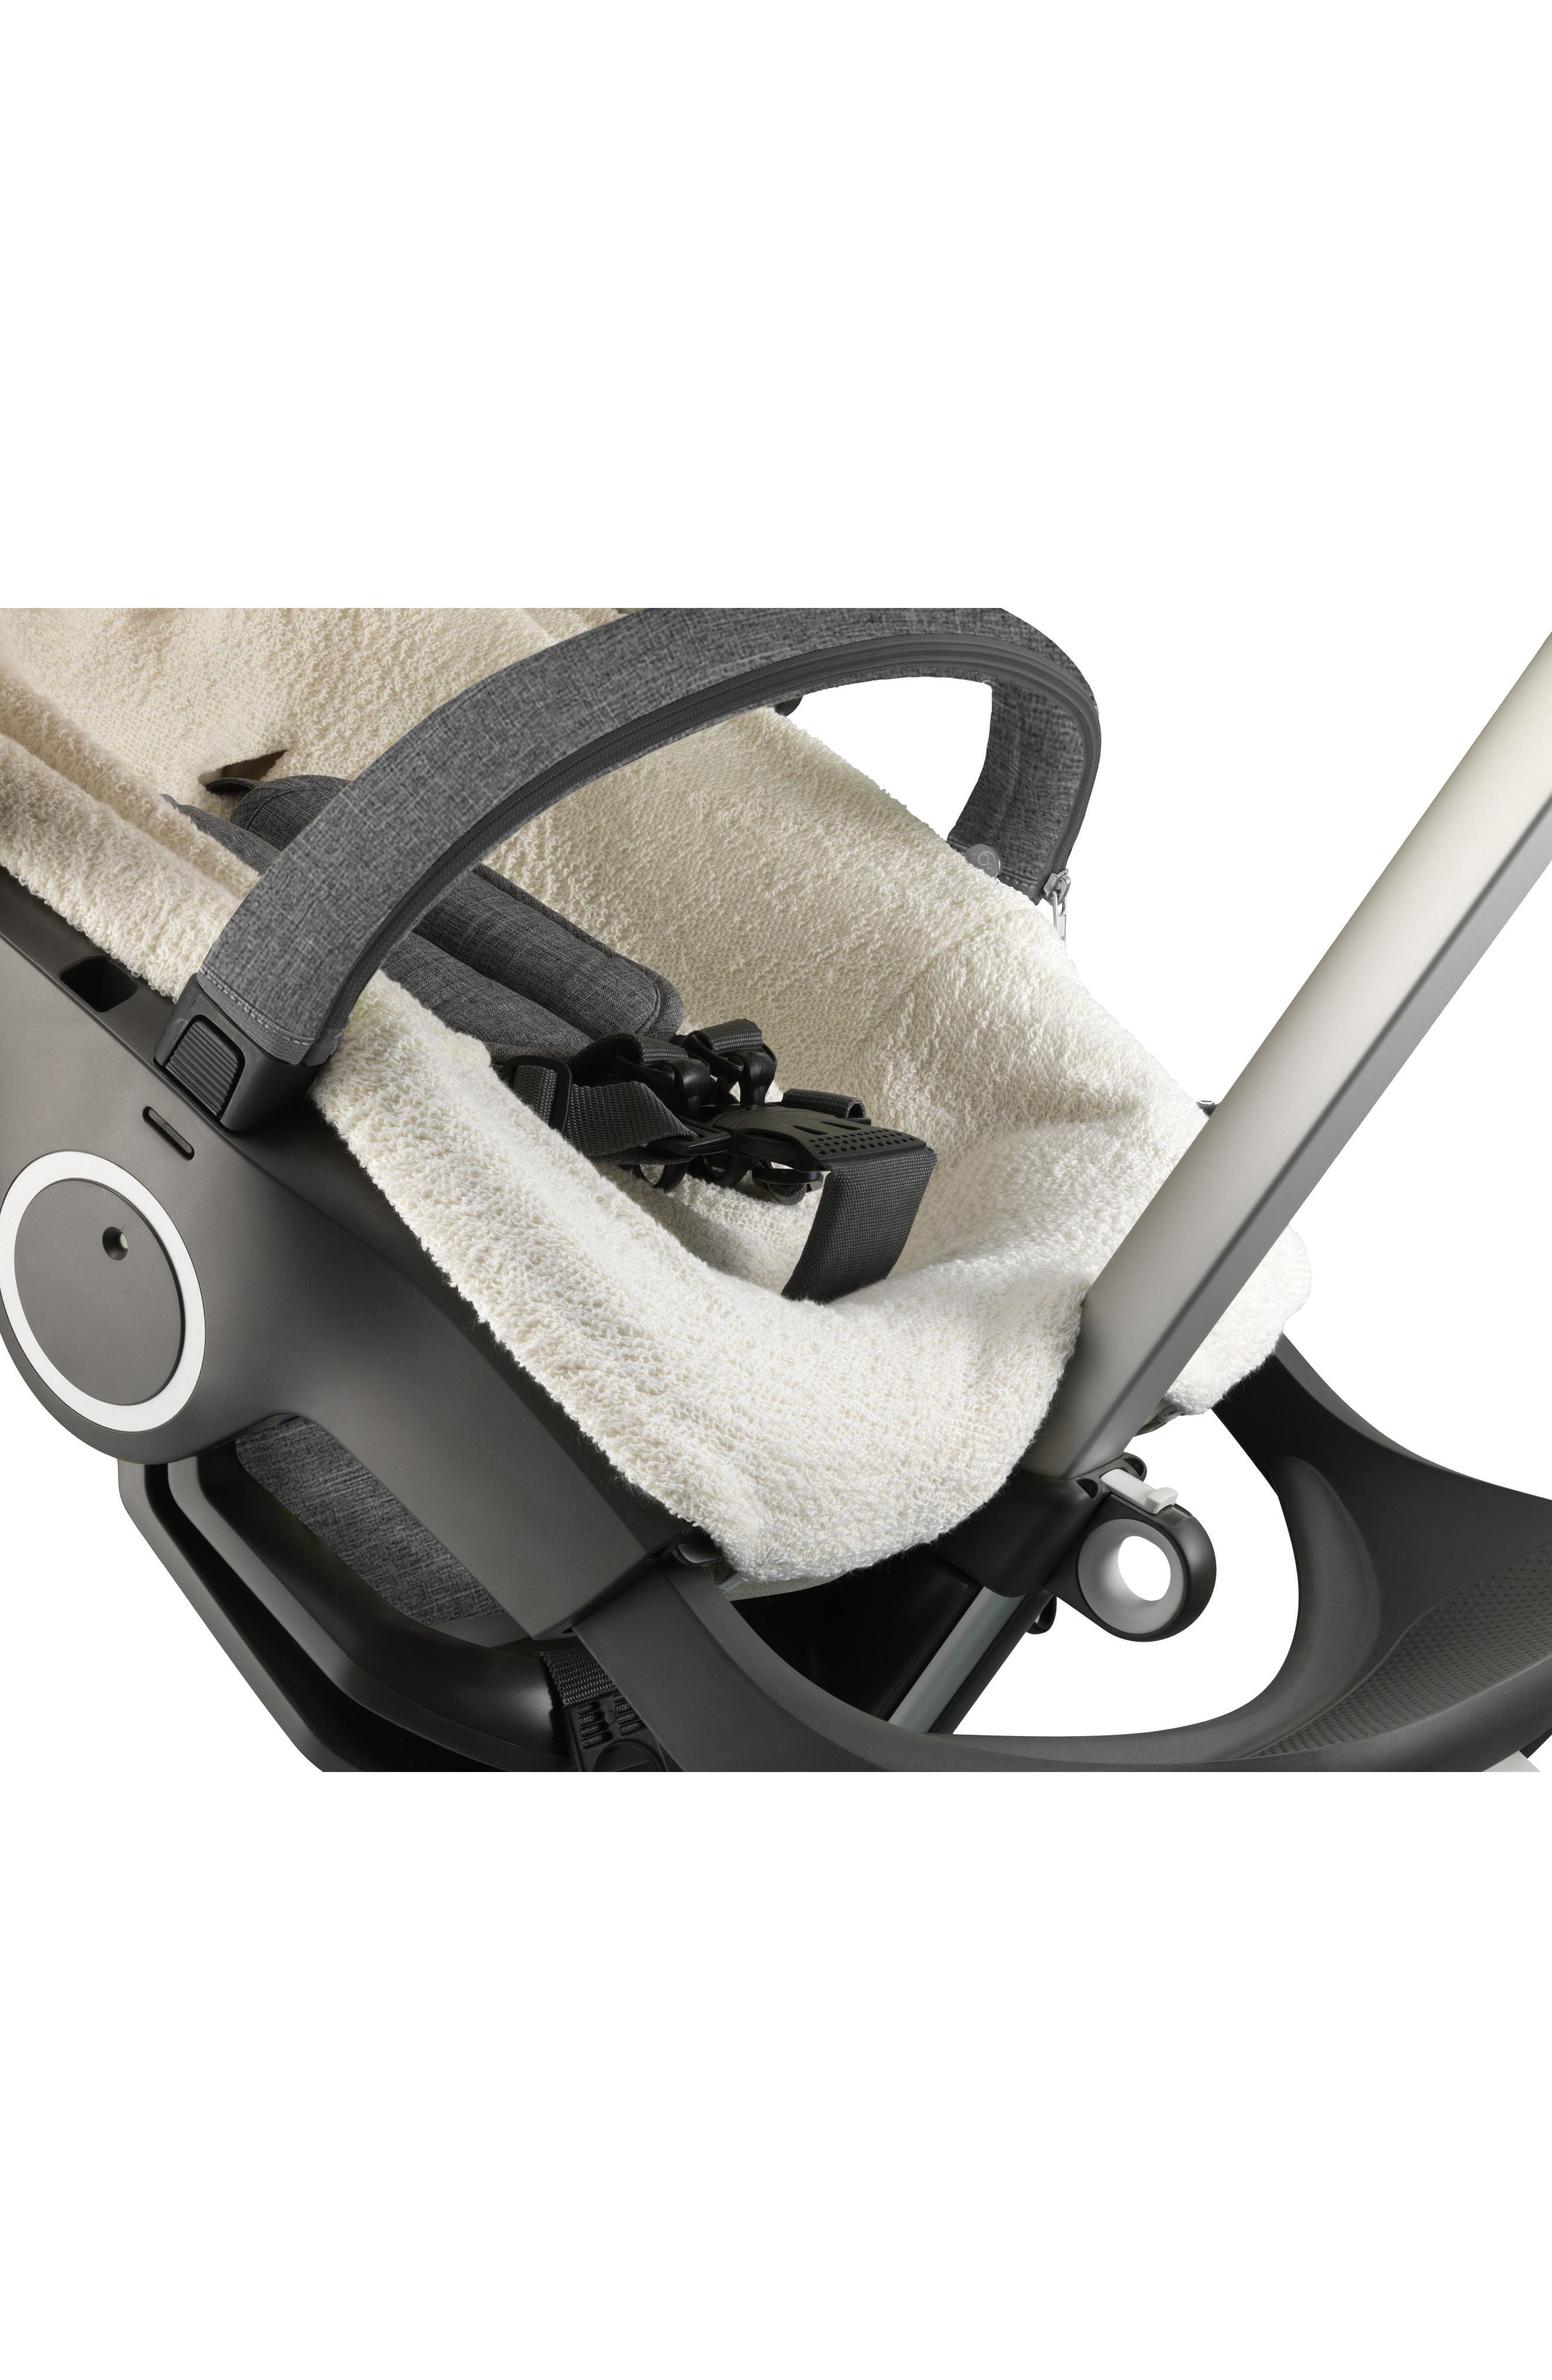 Main Image - Stokke Stroller Terry Seat Cover for Xplory/Trailz/Crusi Strollers